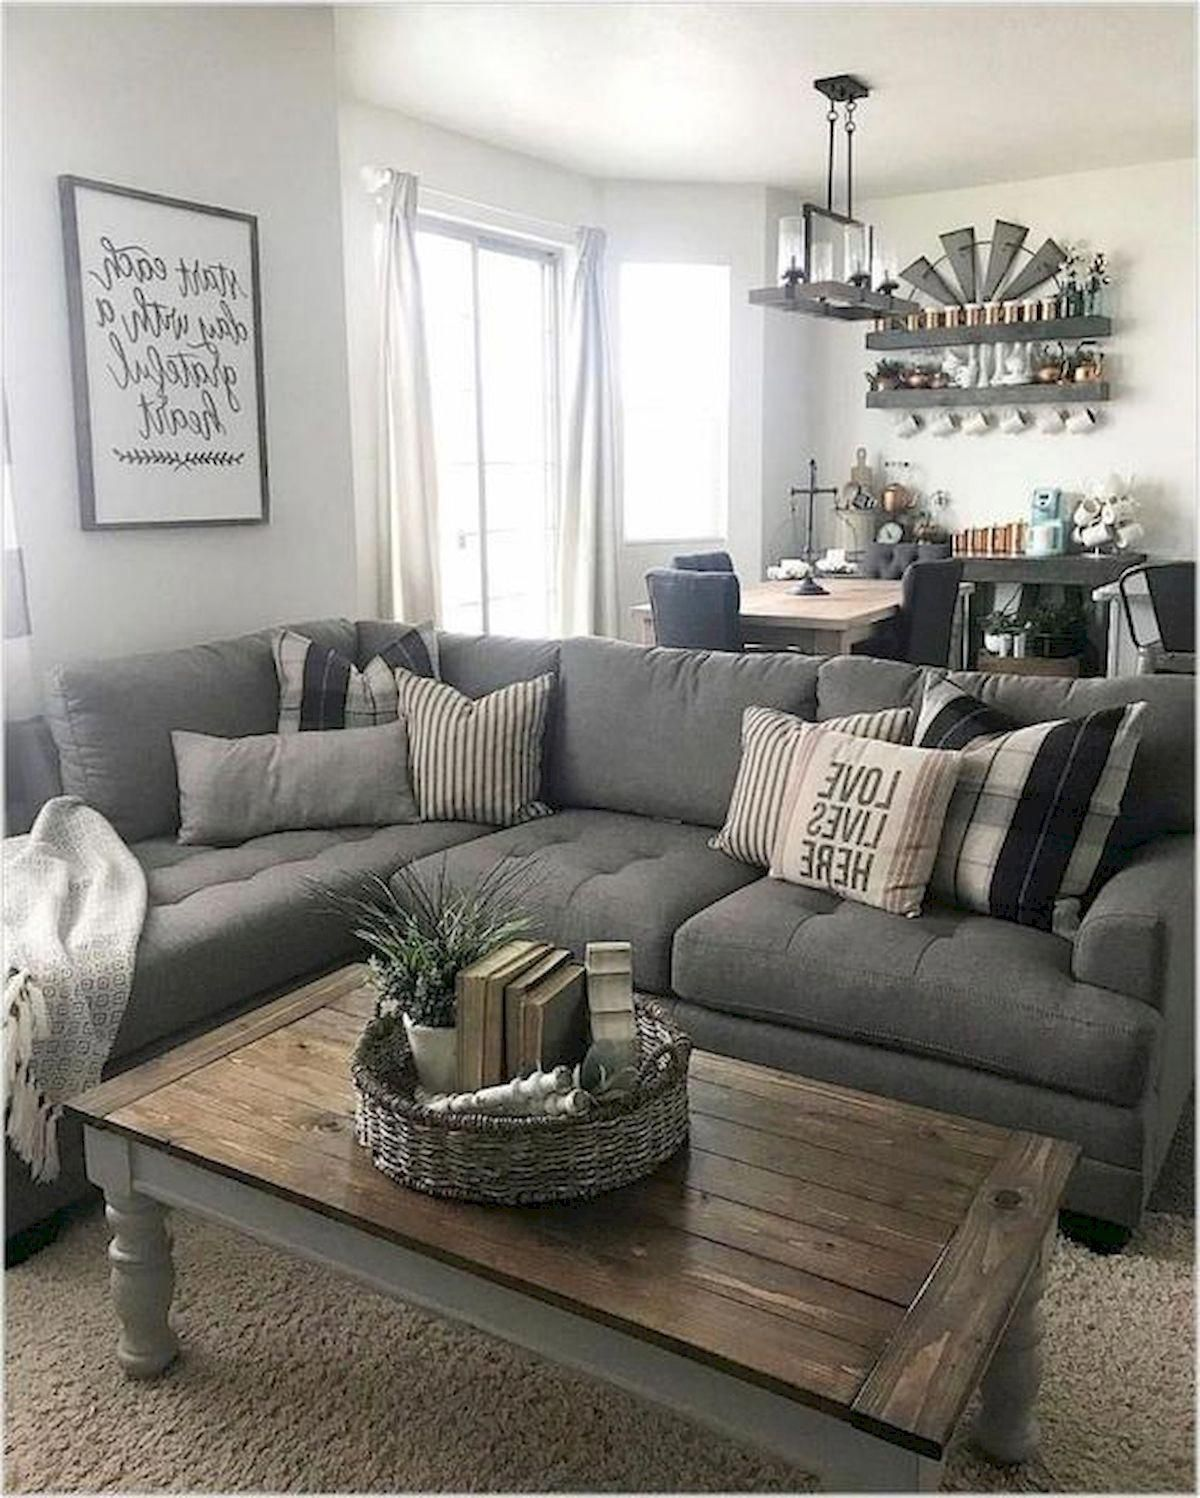 Outstanding Modern Living Room Ideas Are Available On Our Site Check It Out And Yo In 2020 Living Room Decor Gray Modern Farmhouse Living Room Small Living Room Decor